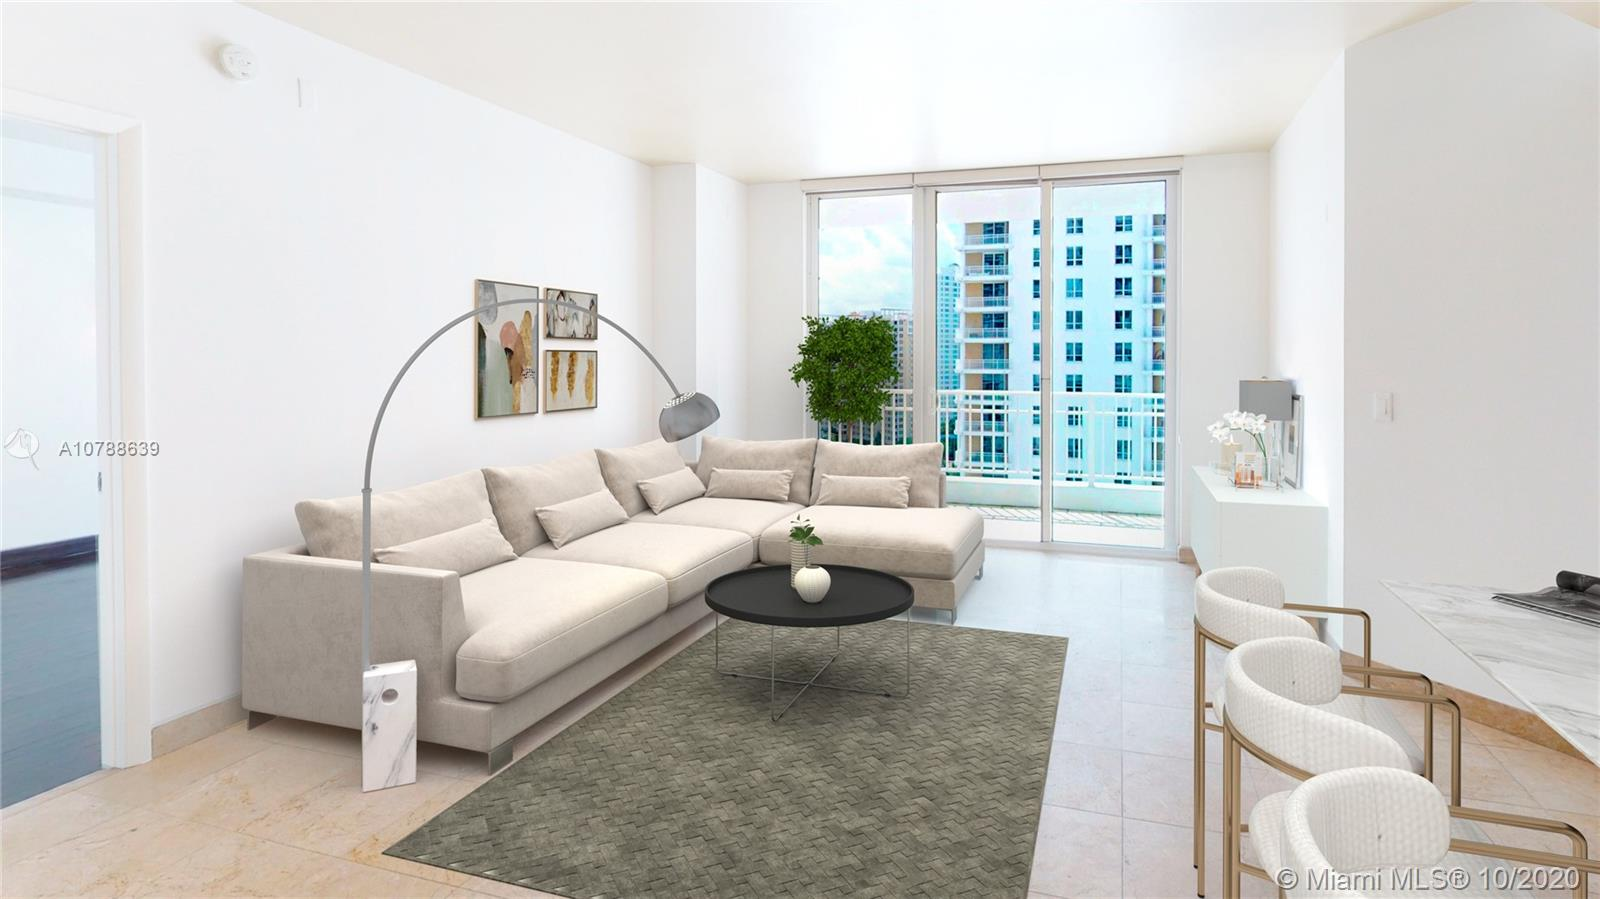 801  Brickell Key Blvd #1609 For Sale A10788639, FL